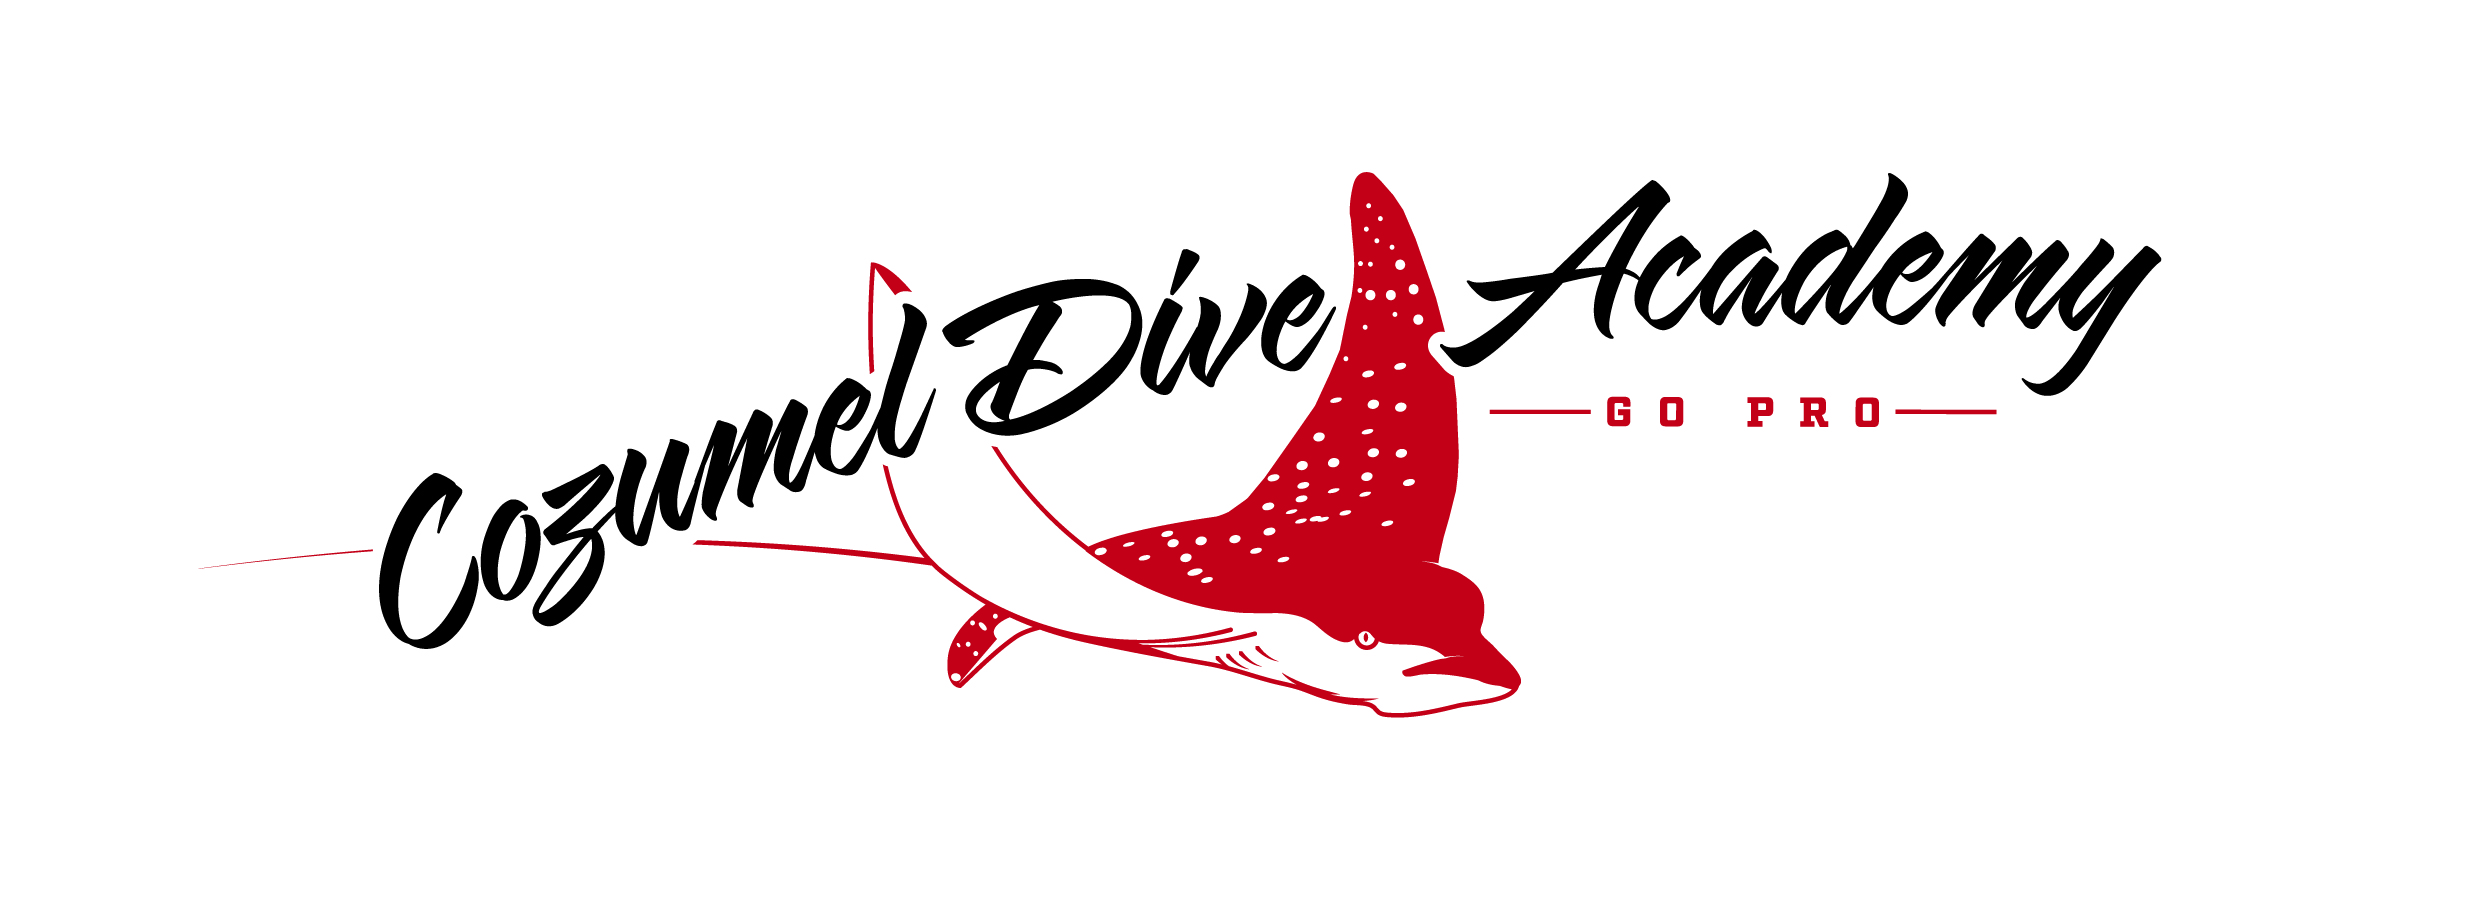 COZUMEL DIVE ACADEMY